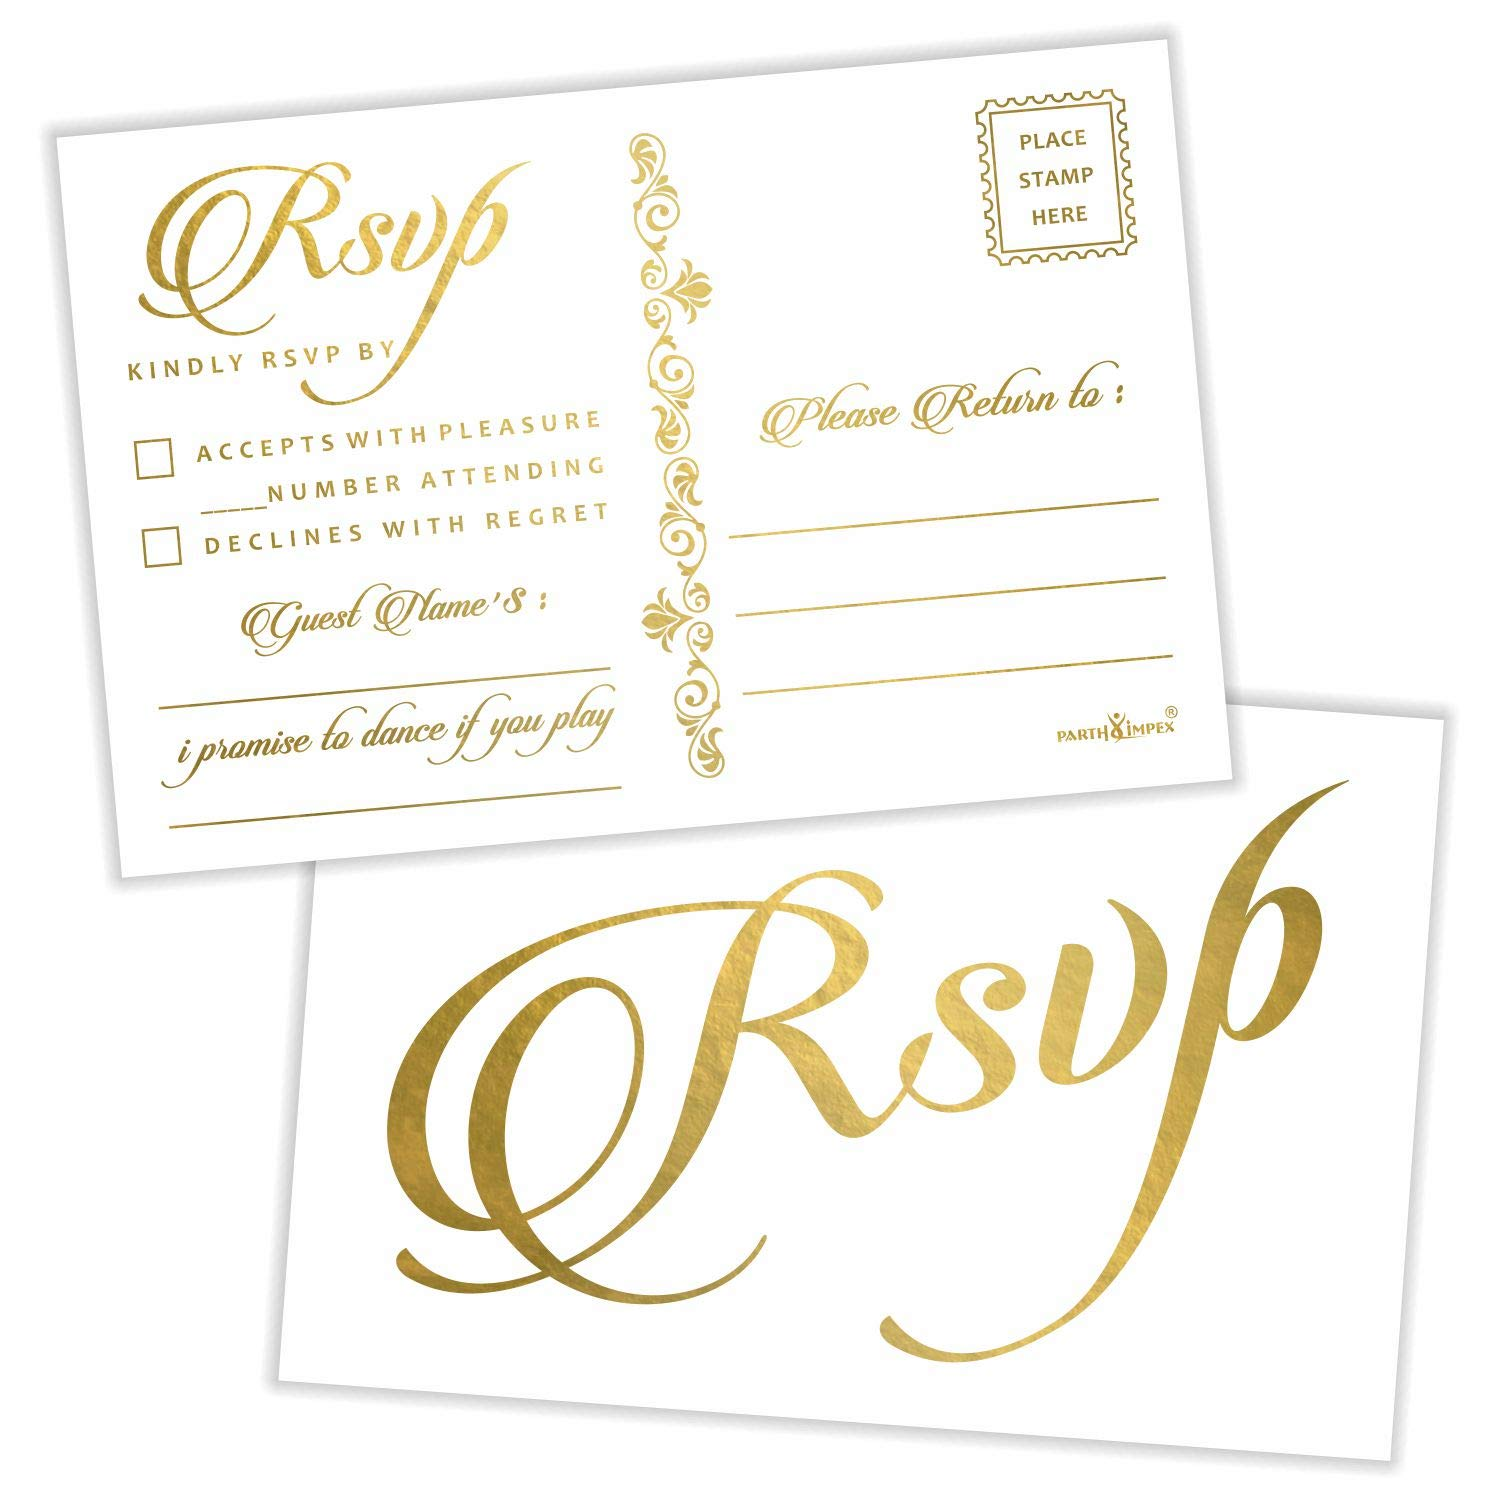 RSVP Postcards (Pack of 50) Gold Foil Stamping with Mailing Side 4''x6'' Response Cards All Occasion Mailable - White